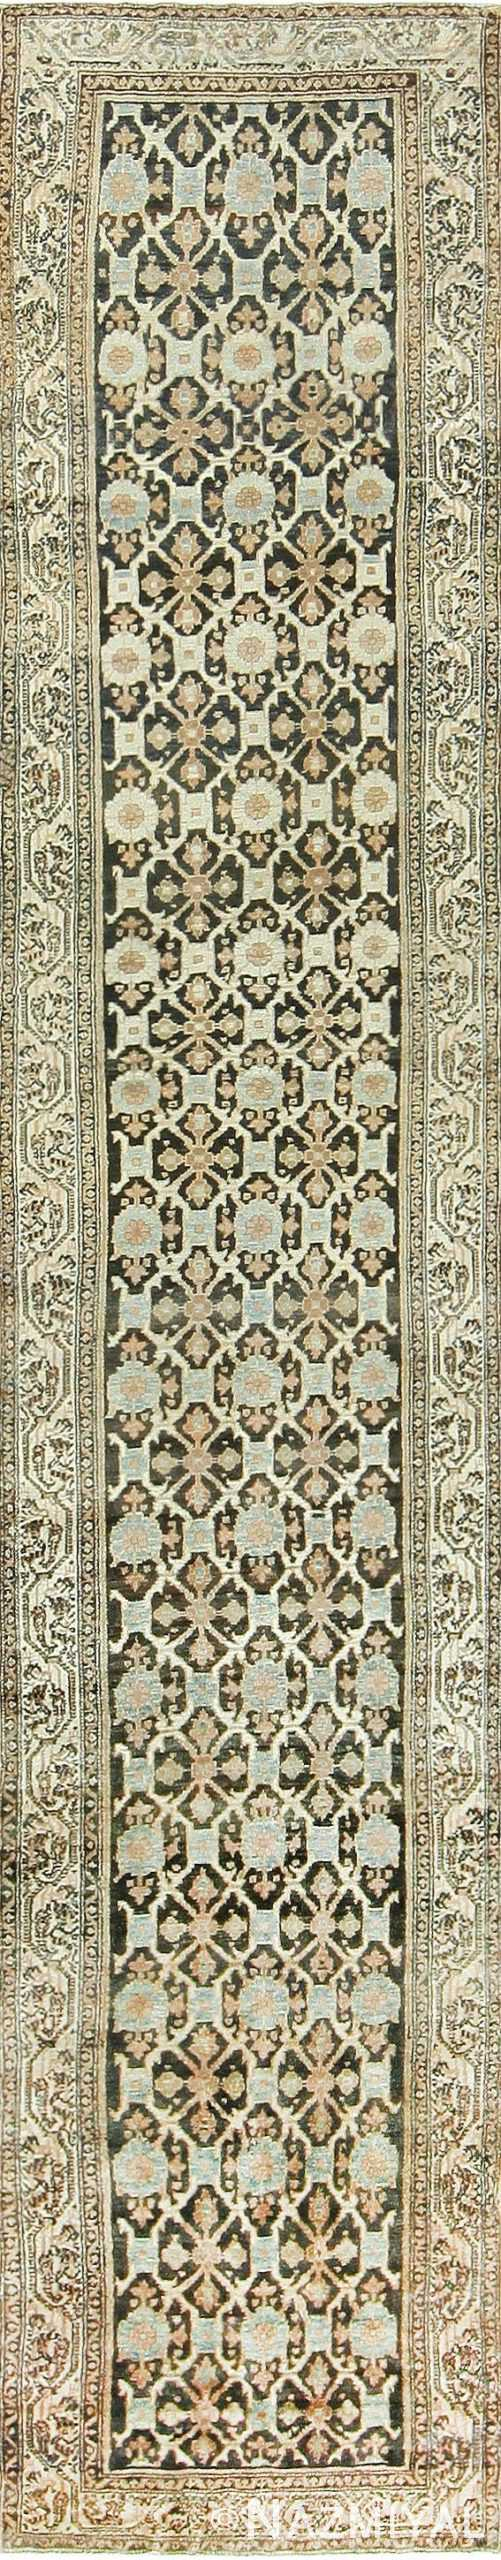 Antique Malayer Persian Runner Rug 47517 Detail/Large View